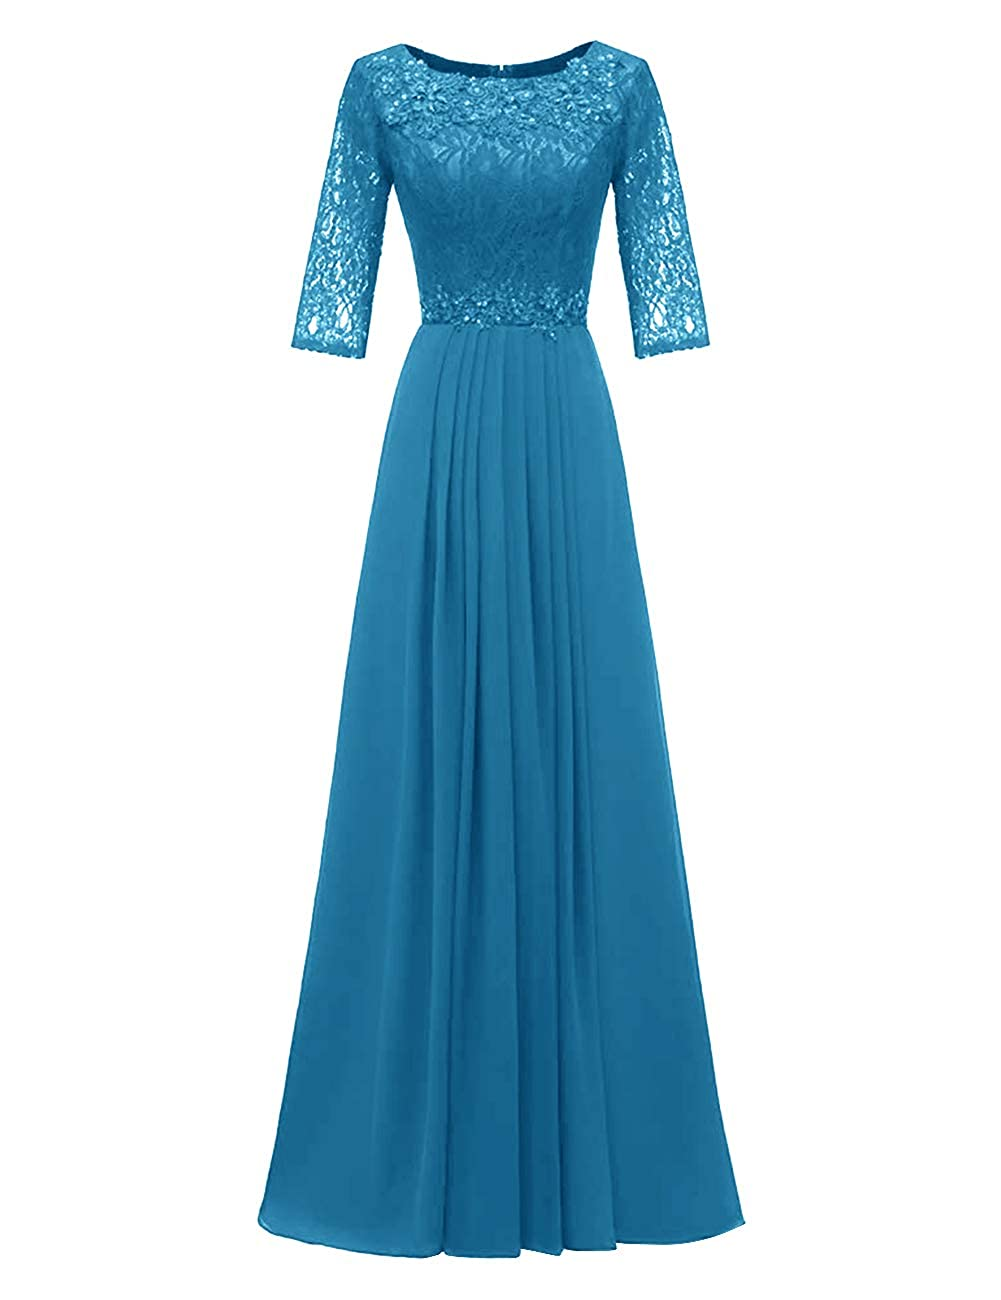 bluee H.S.D Evening Dresses Long Prom Dresses Lace Bridesmaid Dresses Evening Formal Gowns